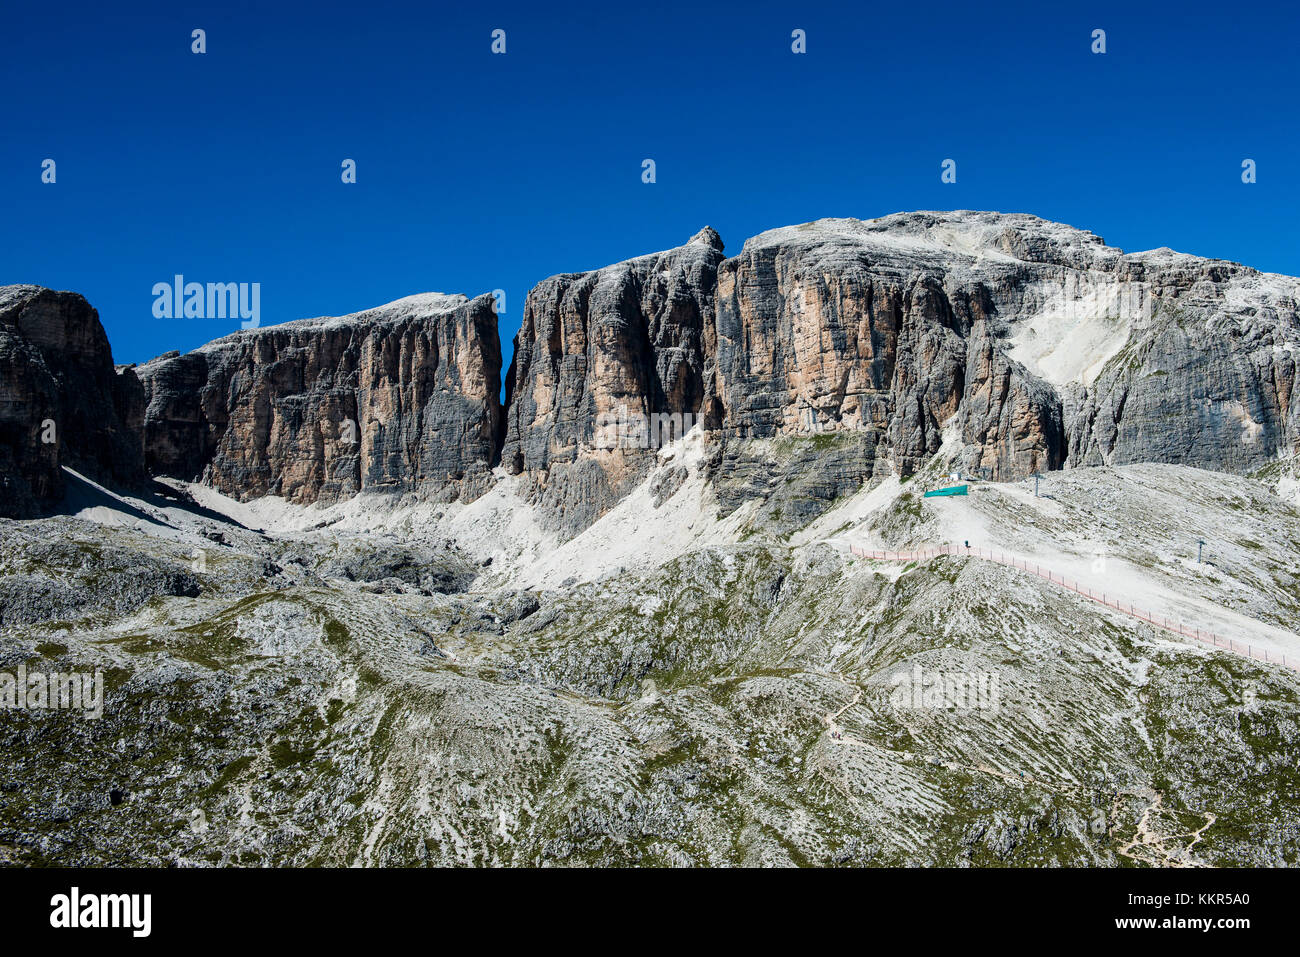 Dolomites with Piz Boe, Sella group, Corvara, aerial picture, South Tirol, Italy Stock Photo